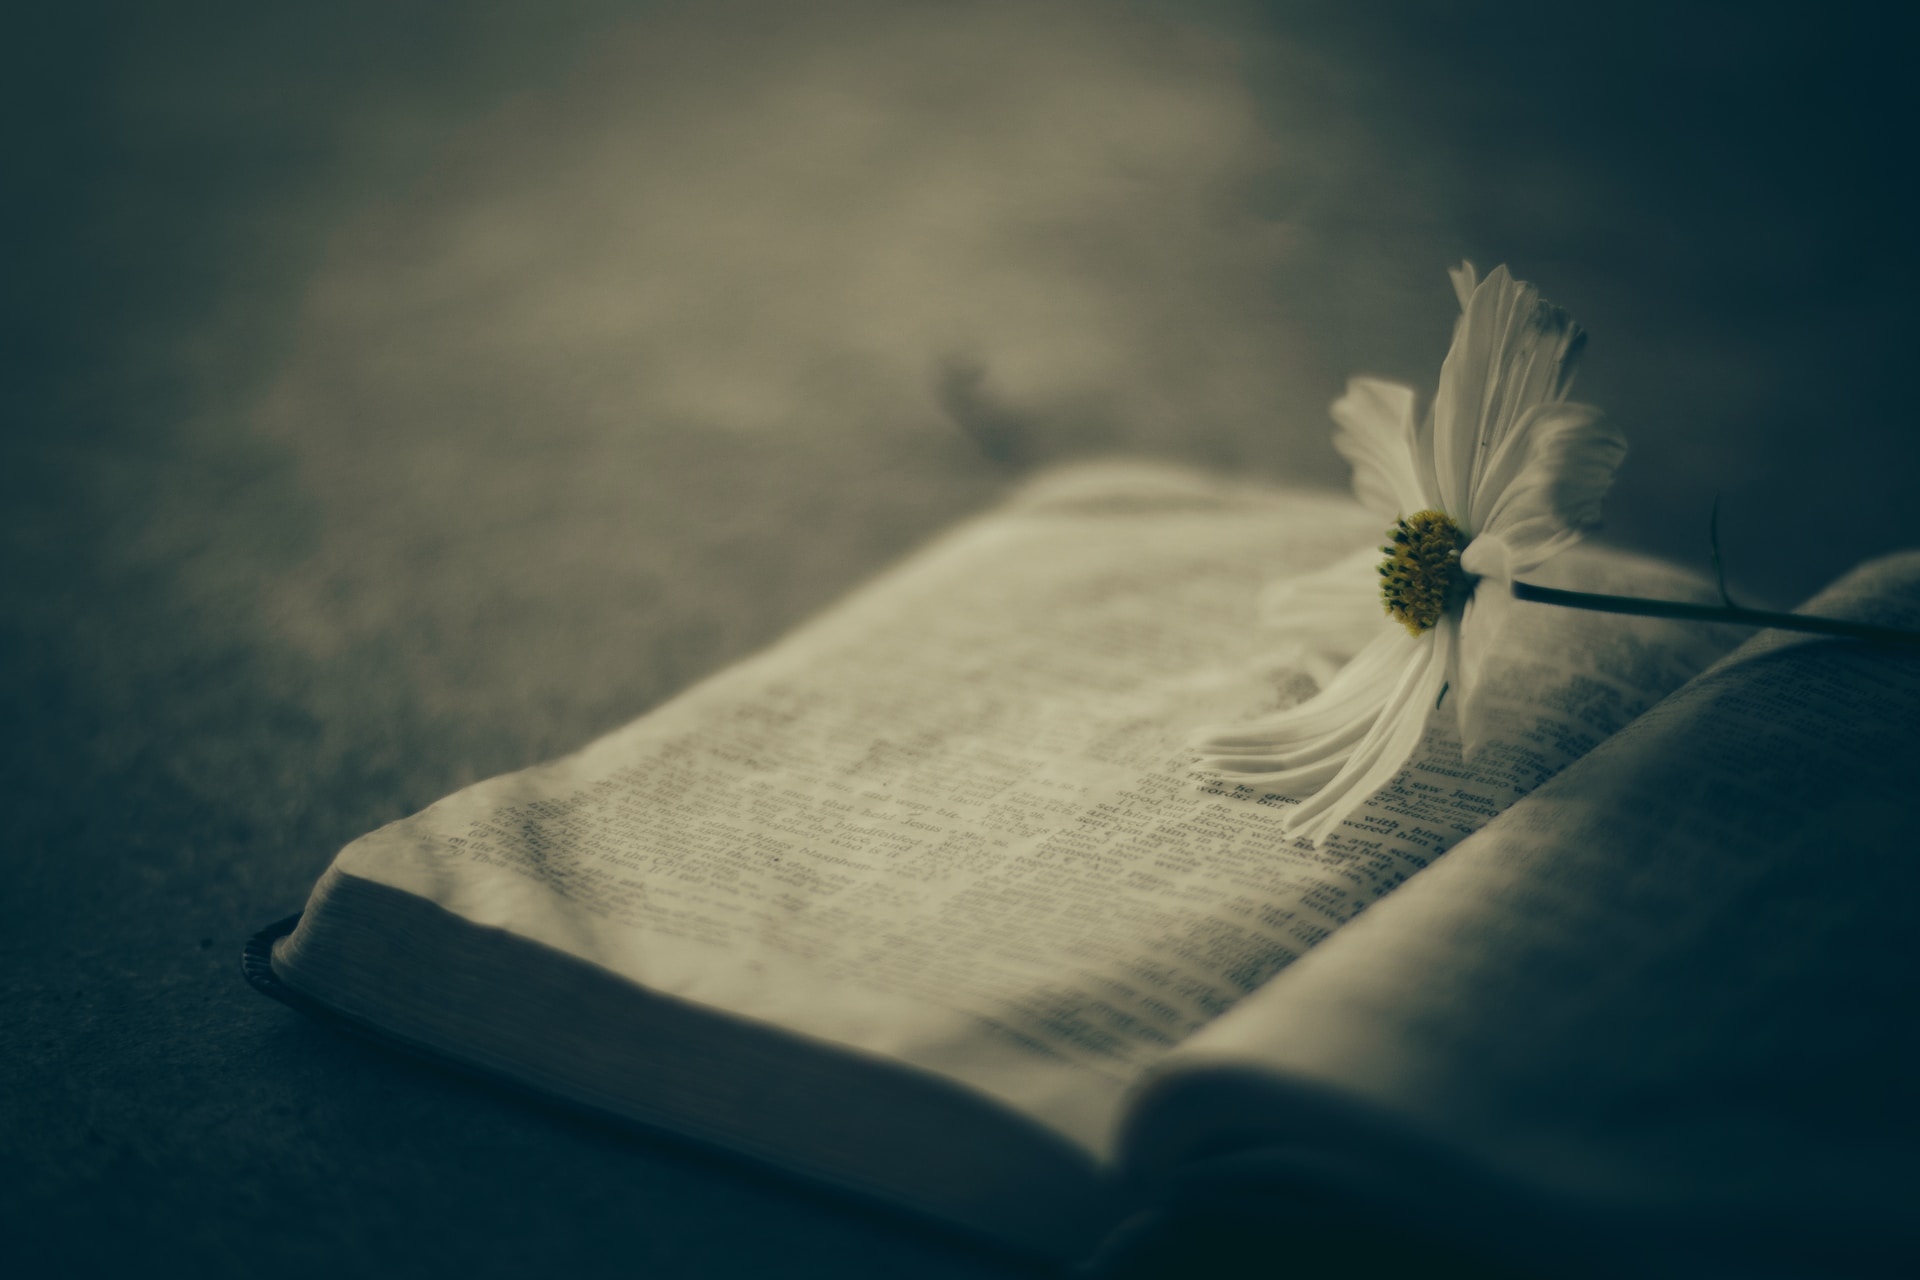 white flower on white book page